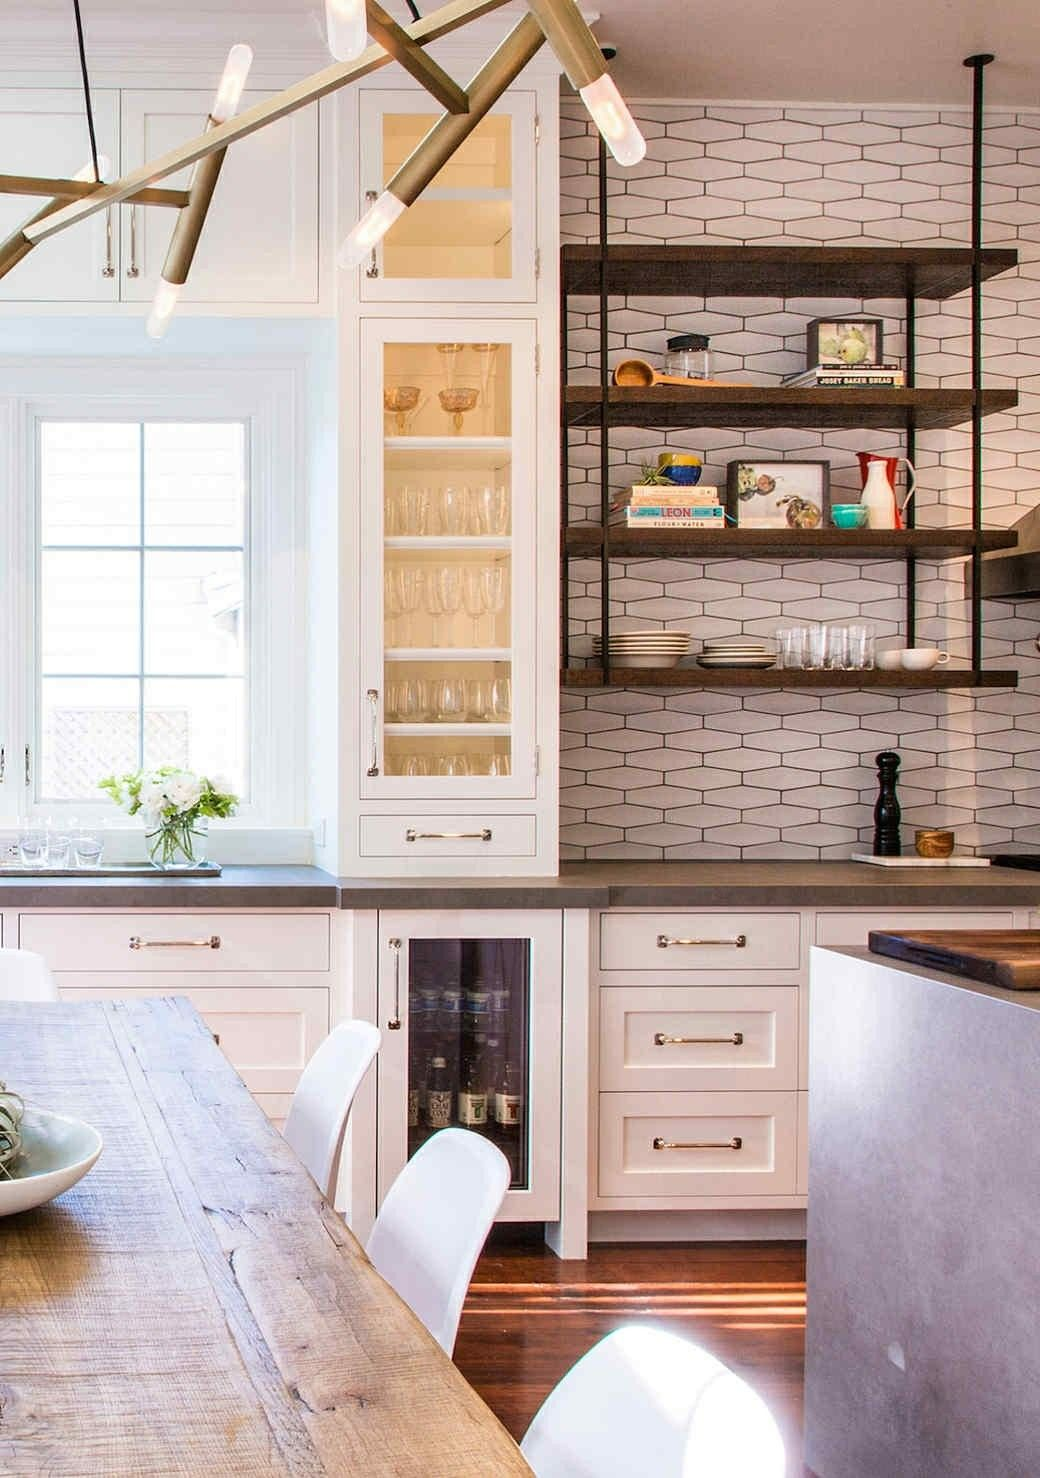 Pin by kathy heller on hanks hill pinterest decoration and kitchens